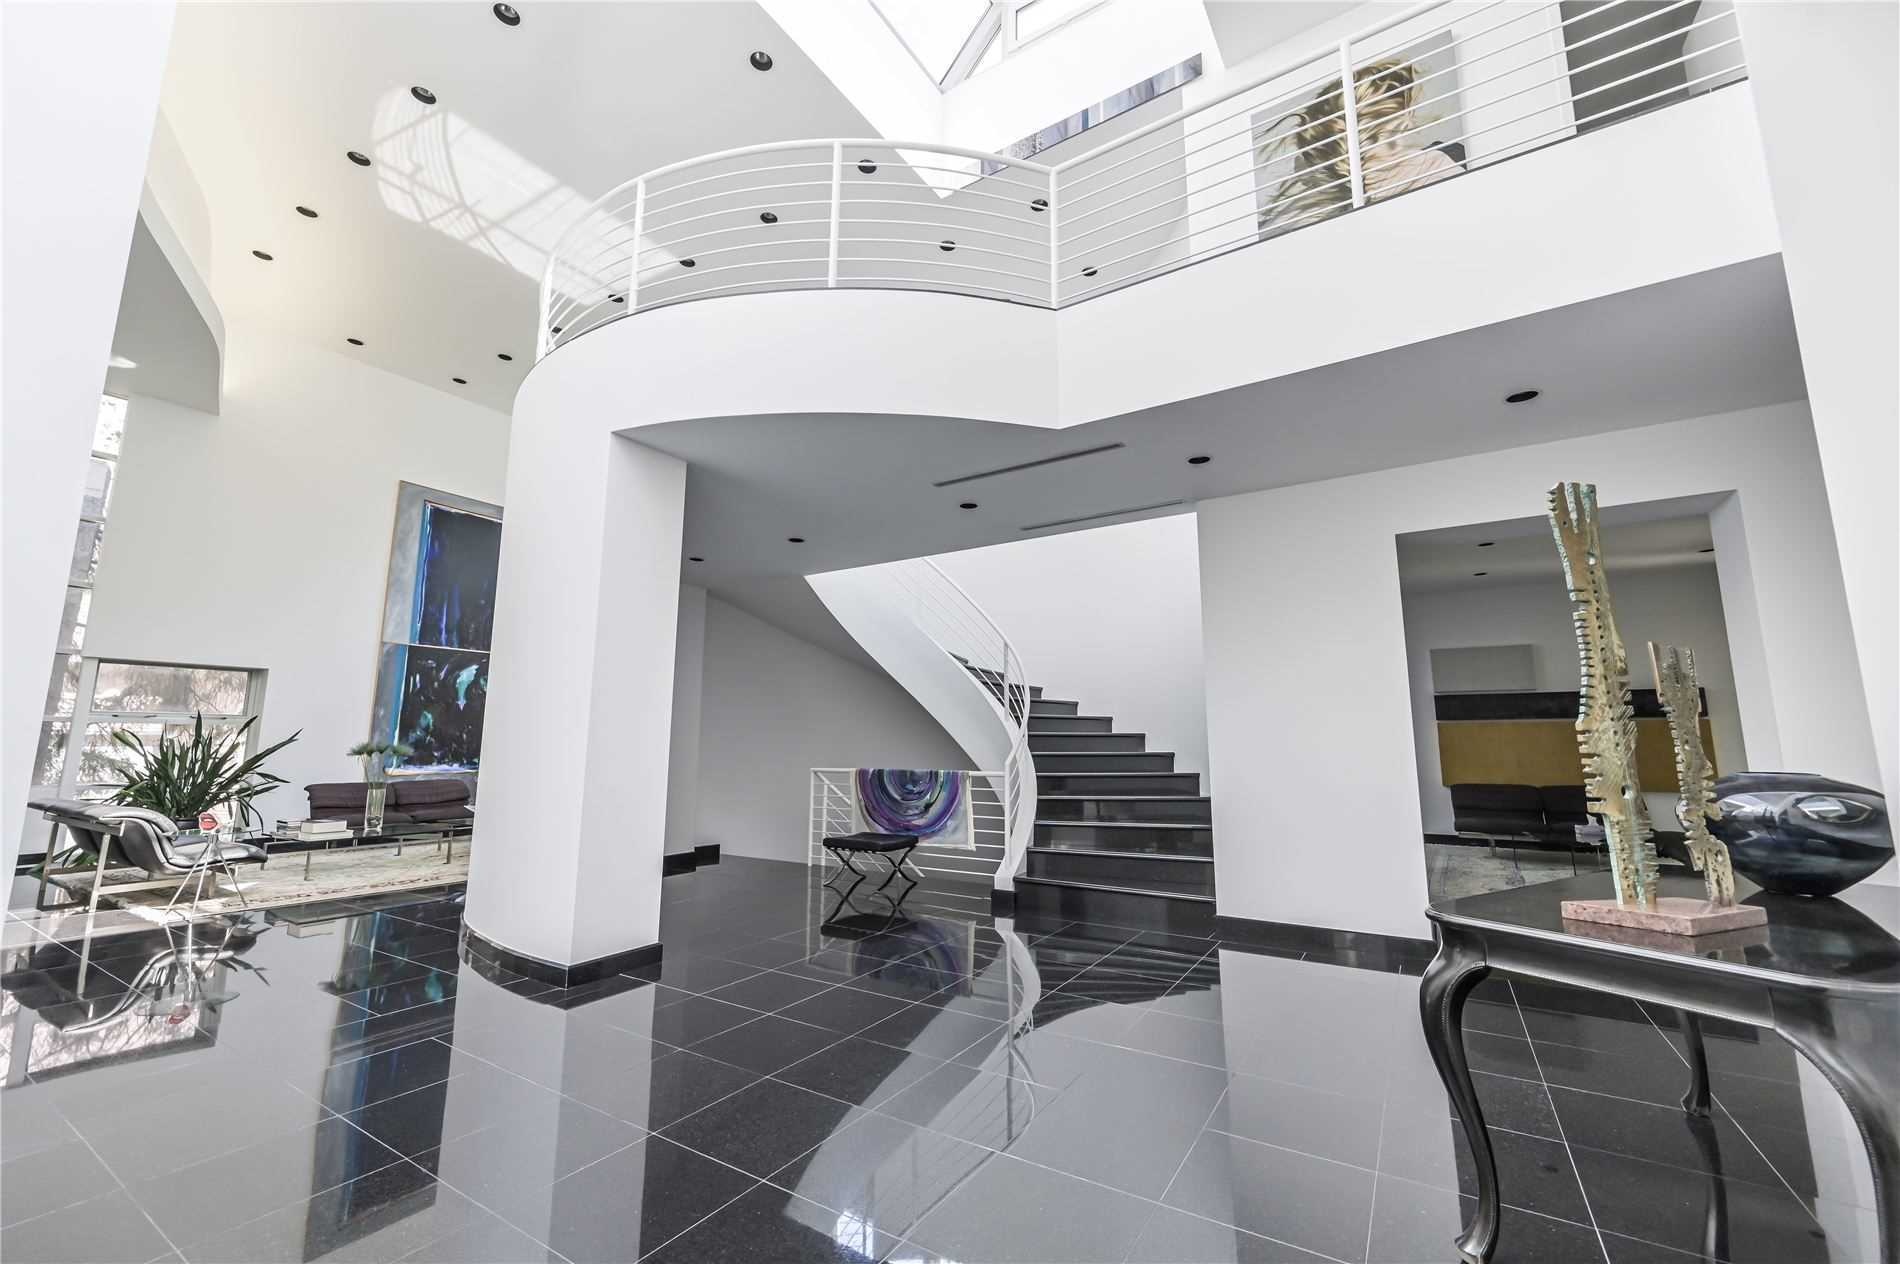 Absolutely Spectacular Modern Masterpiece Situated On Large Estate Lot In Prestigious Bayview Glen!! Nestled In A Serene Muskoka-Like Setting & Filled W/ Natural Light, This Home Features Approx 8,000 S/F Of Open Living Space, Soaring Ceilings (10' Main, 10' Upper, 9' Bsmt), 5 Bdrms, 7 Bathrooms, Gourmet Kitchen W/Integrated Appliances & Large Centre Island, Finished W/O Bsmt Complete W/ Nanny Suite, Backyard Oasis W/ In-Ground Pool & Much More!!!